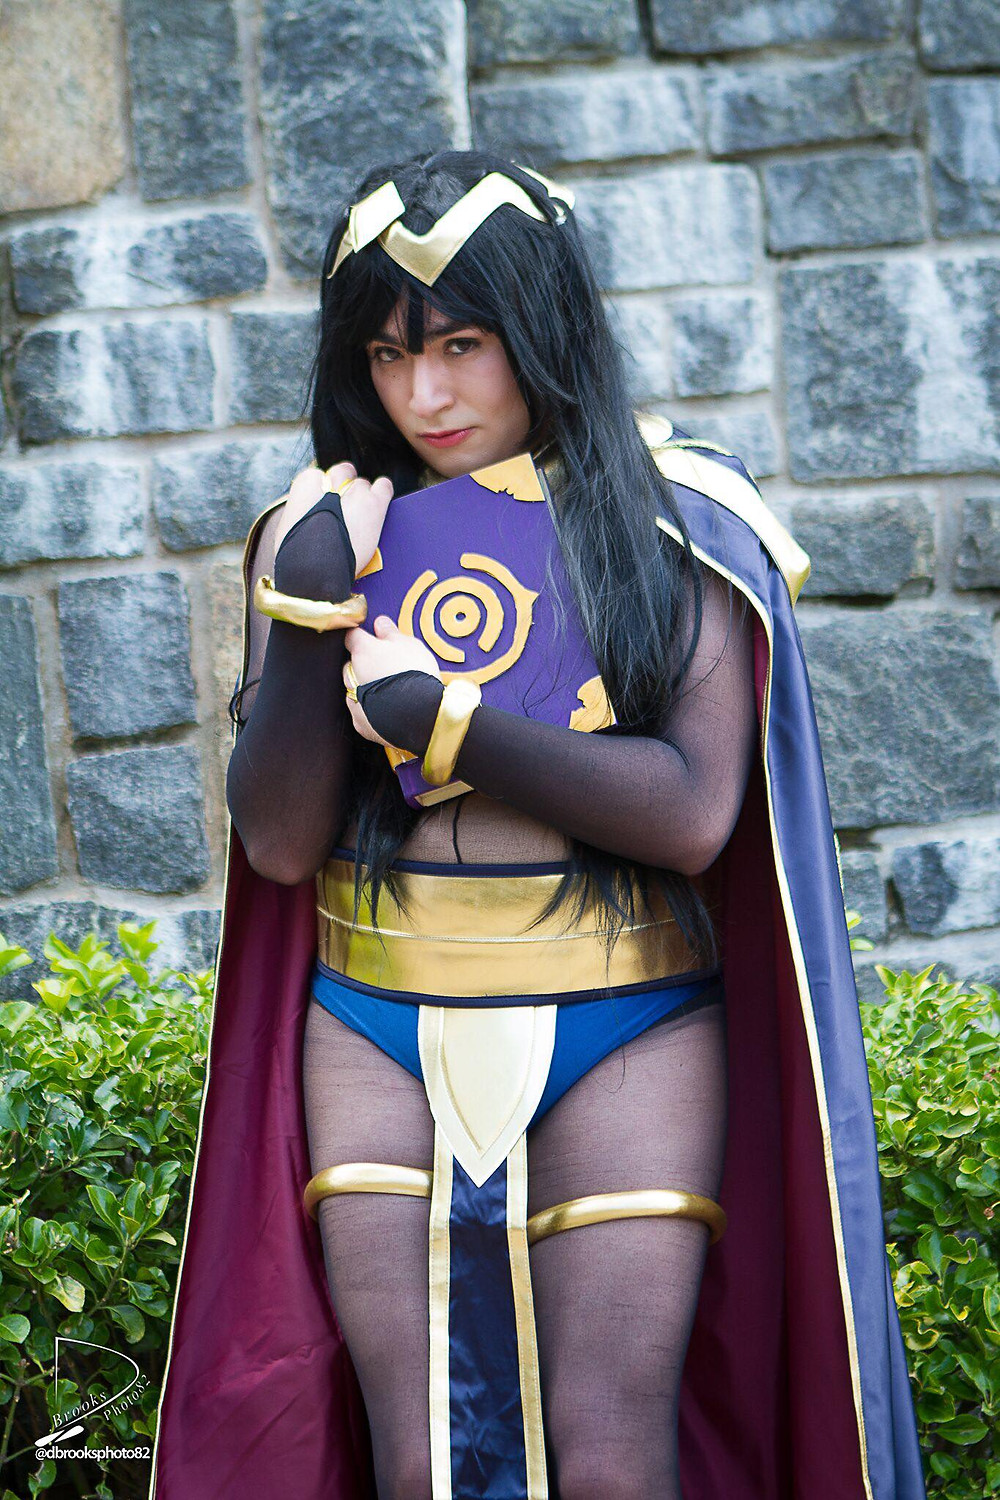 Man dressed up as Tharja from Fire Emblem clutching a magical book